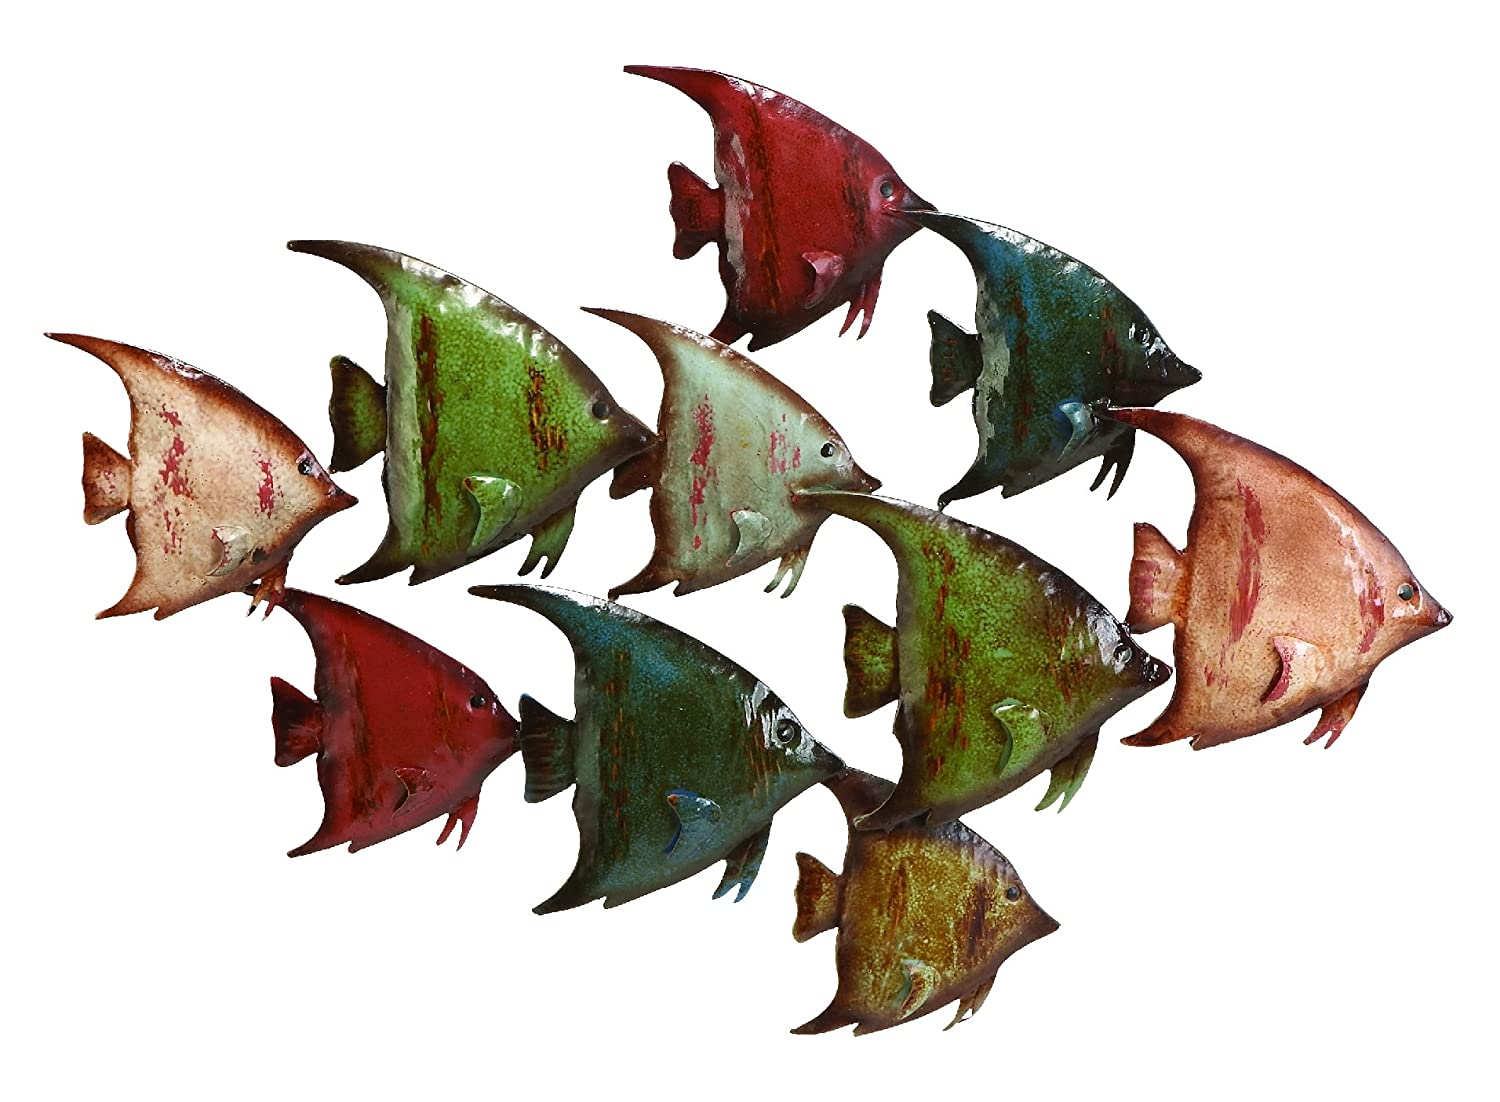 Amazon.com: Deco 79 63533 Metal Fish Wall Decor: Home & Kitchen